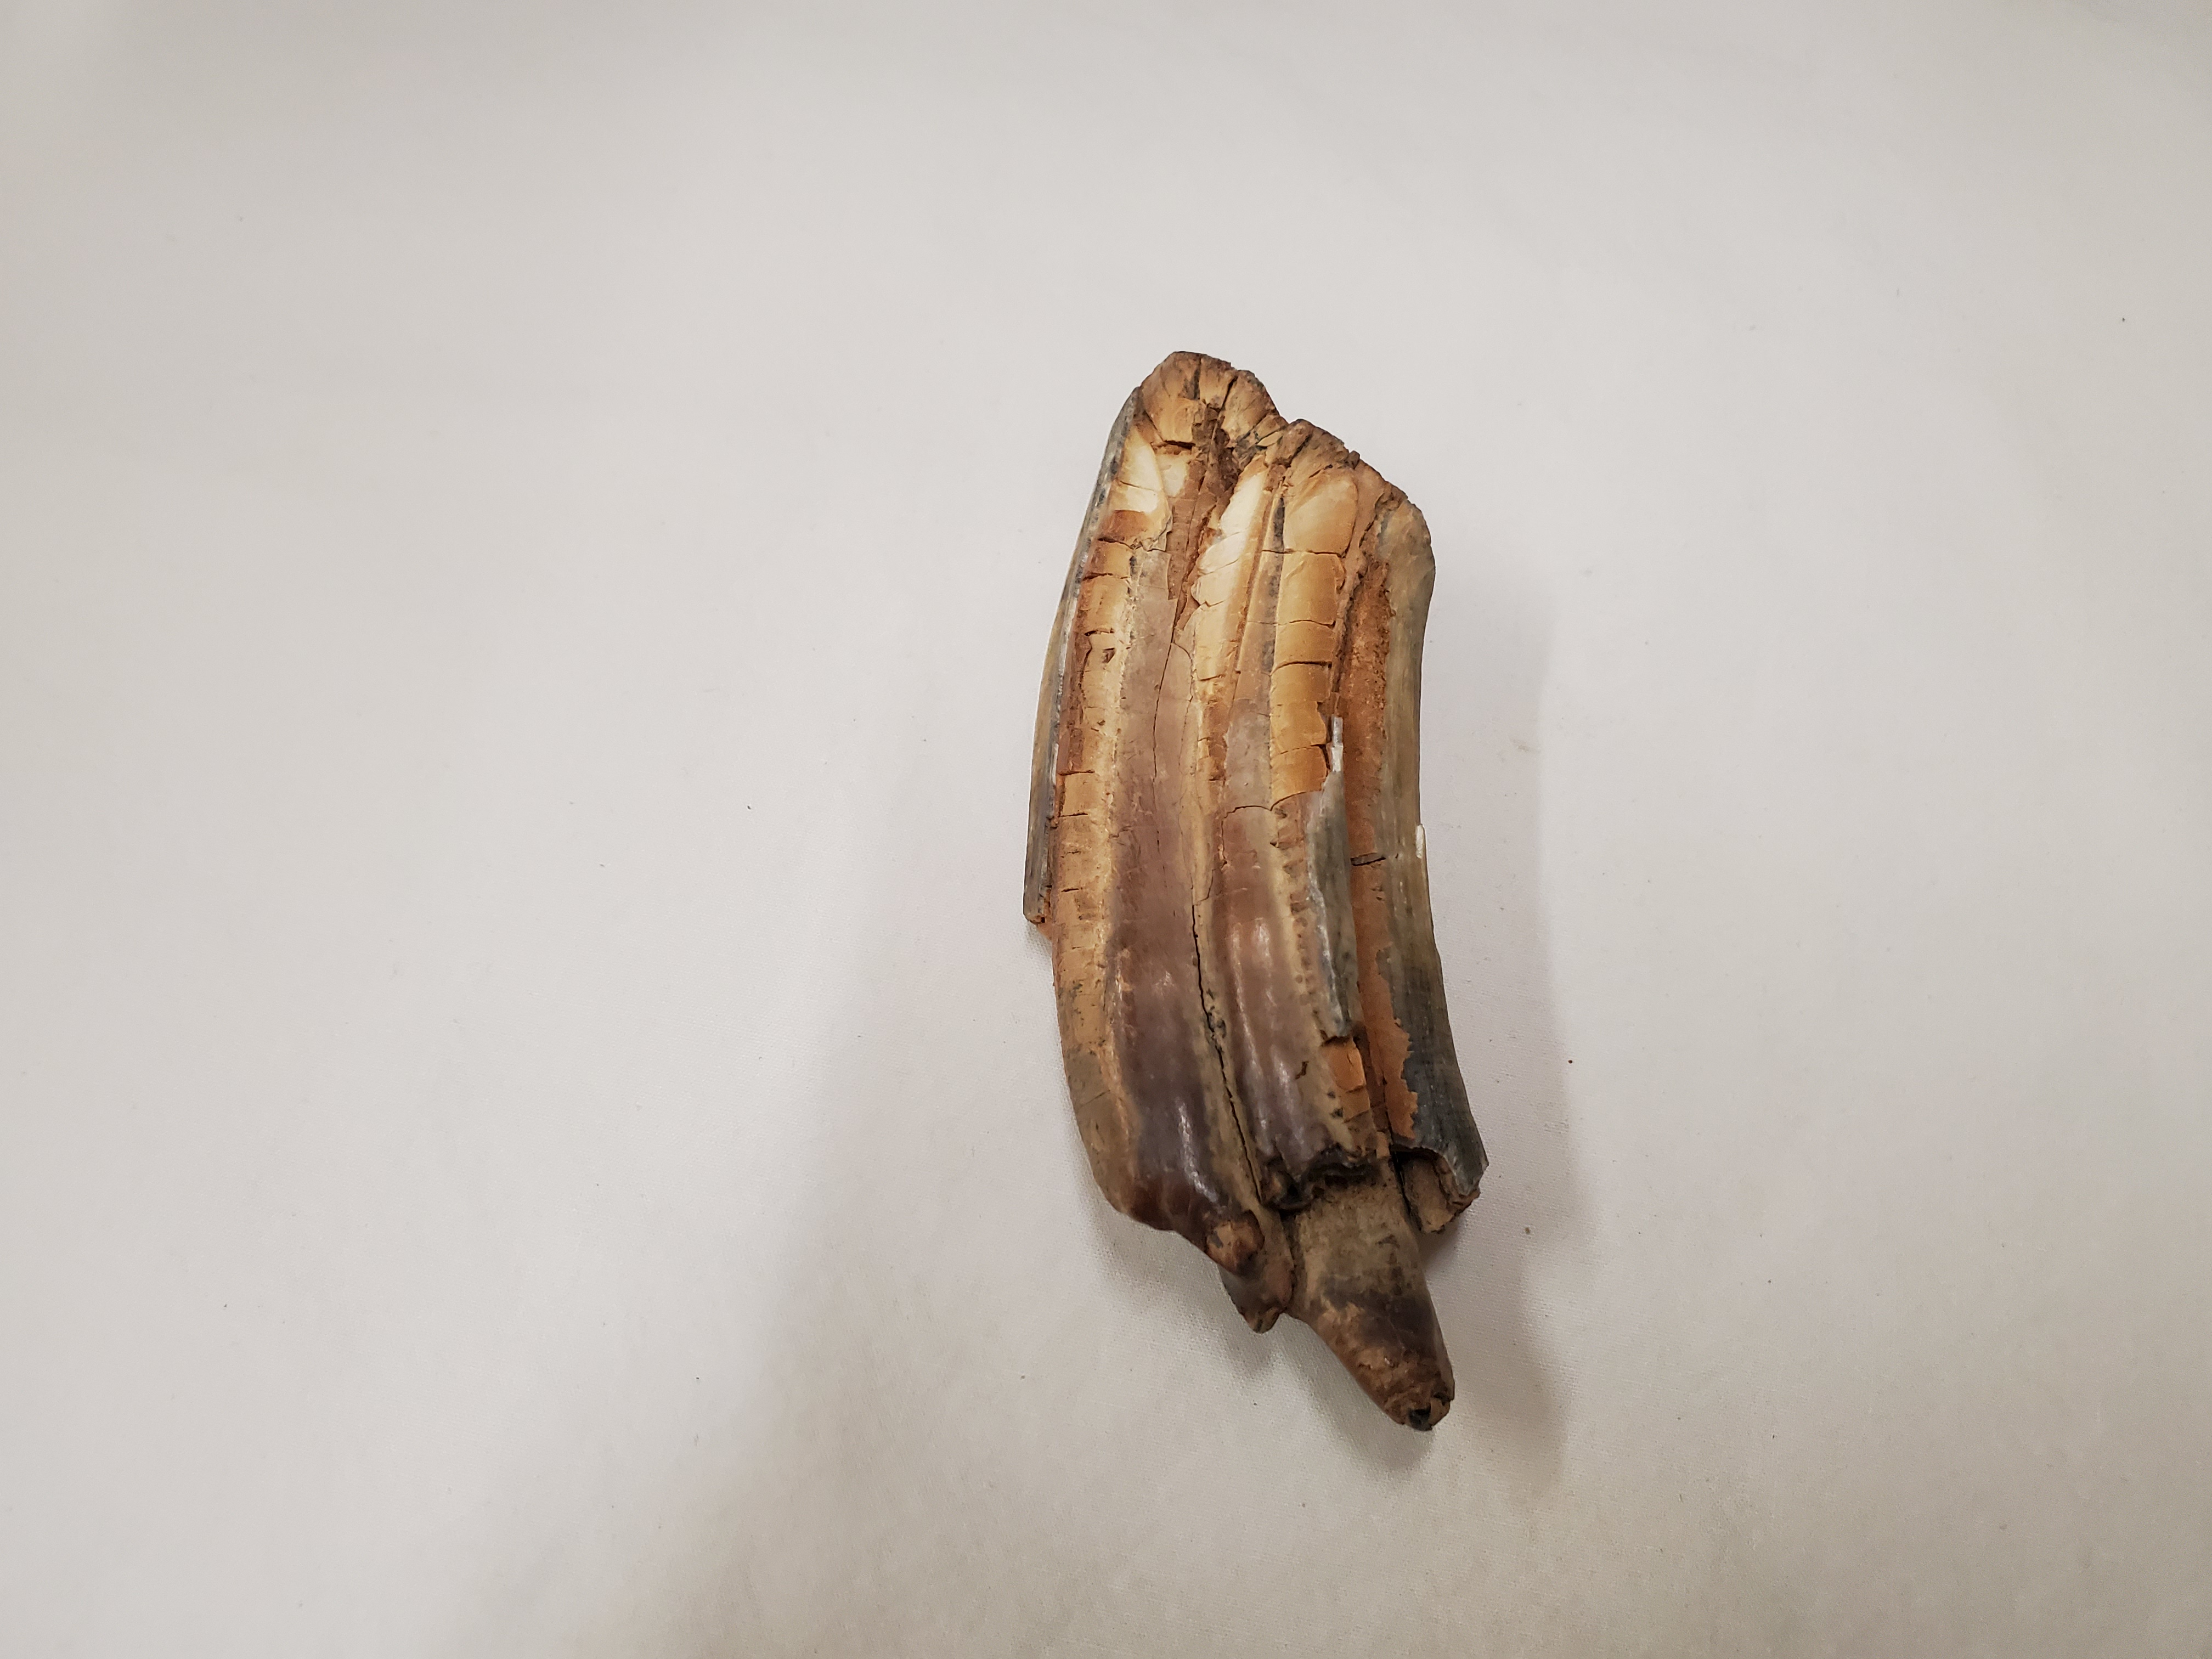 A fossilized horse tooth on a white background